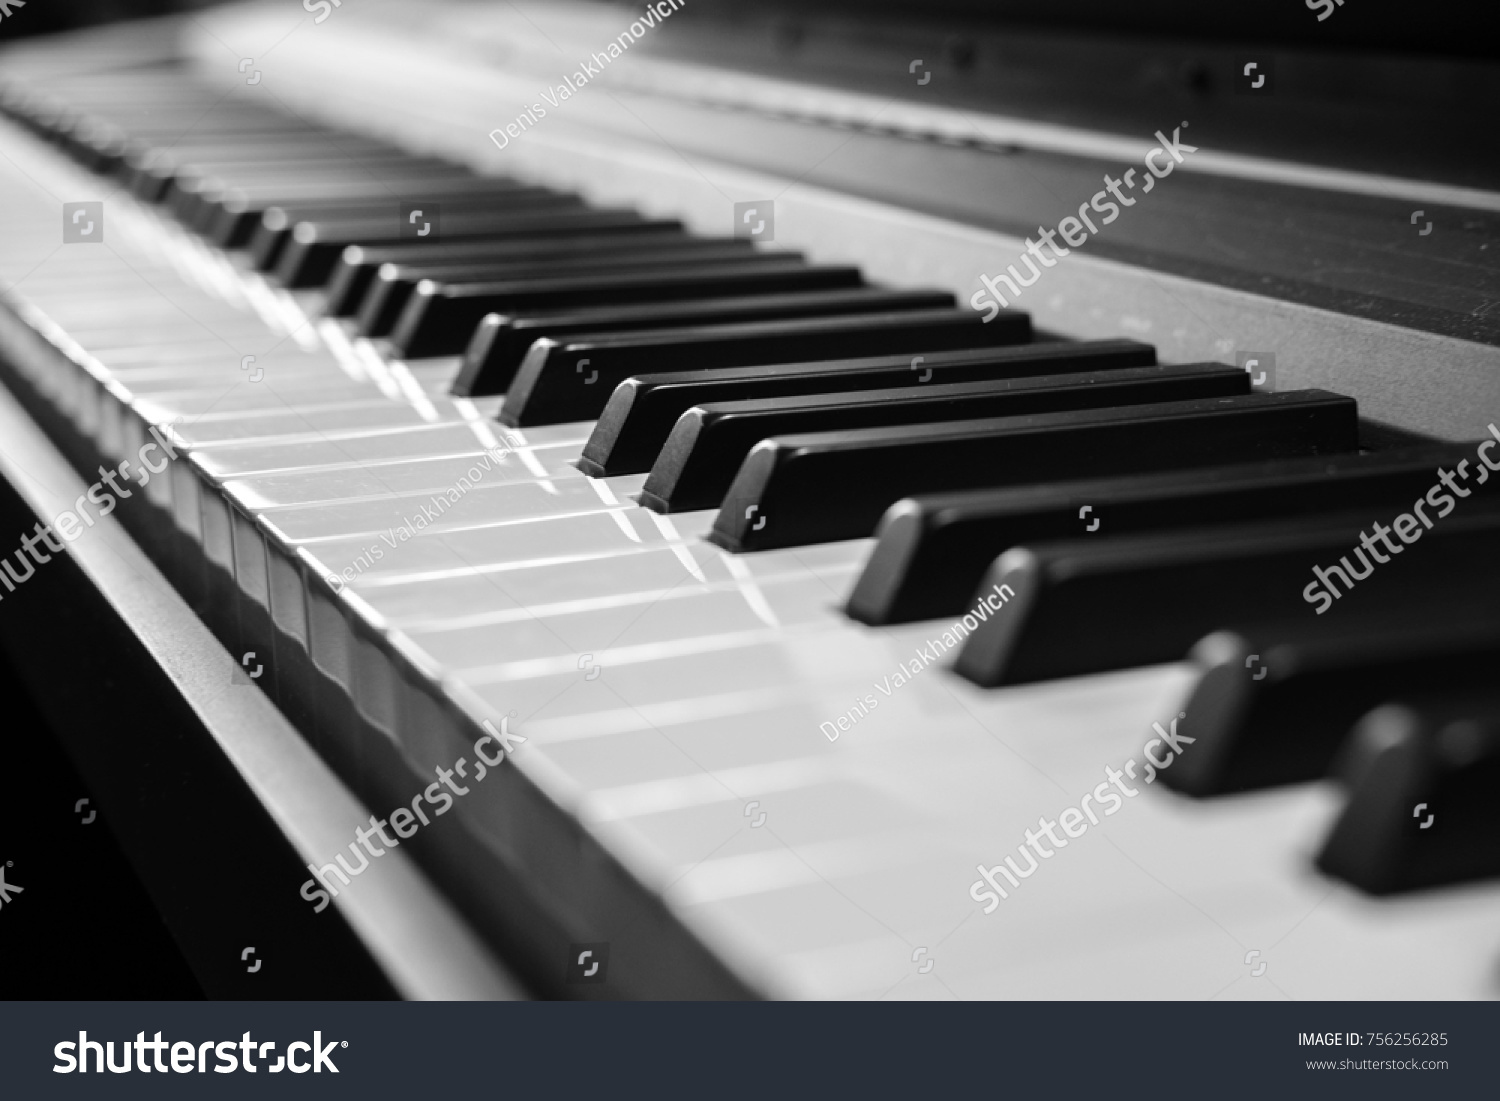 Piano keys piano keys black and white photo